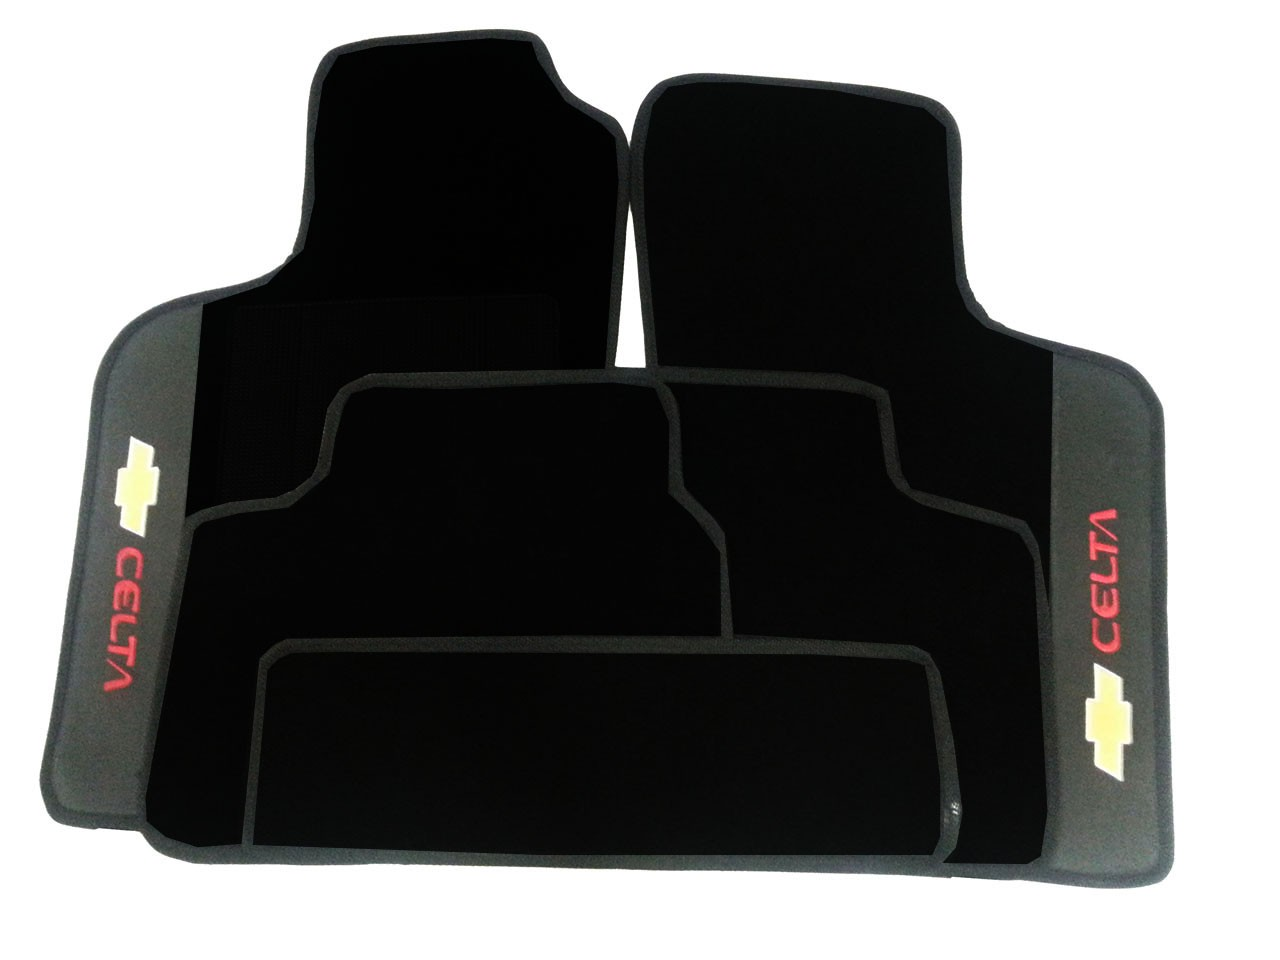 Tapete Chevrolet Celta Borracha Pvc Com Base Pinada